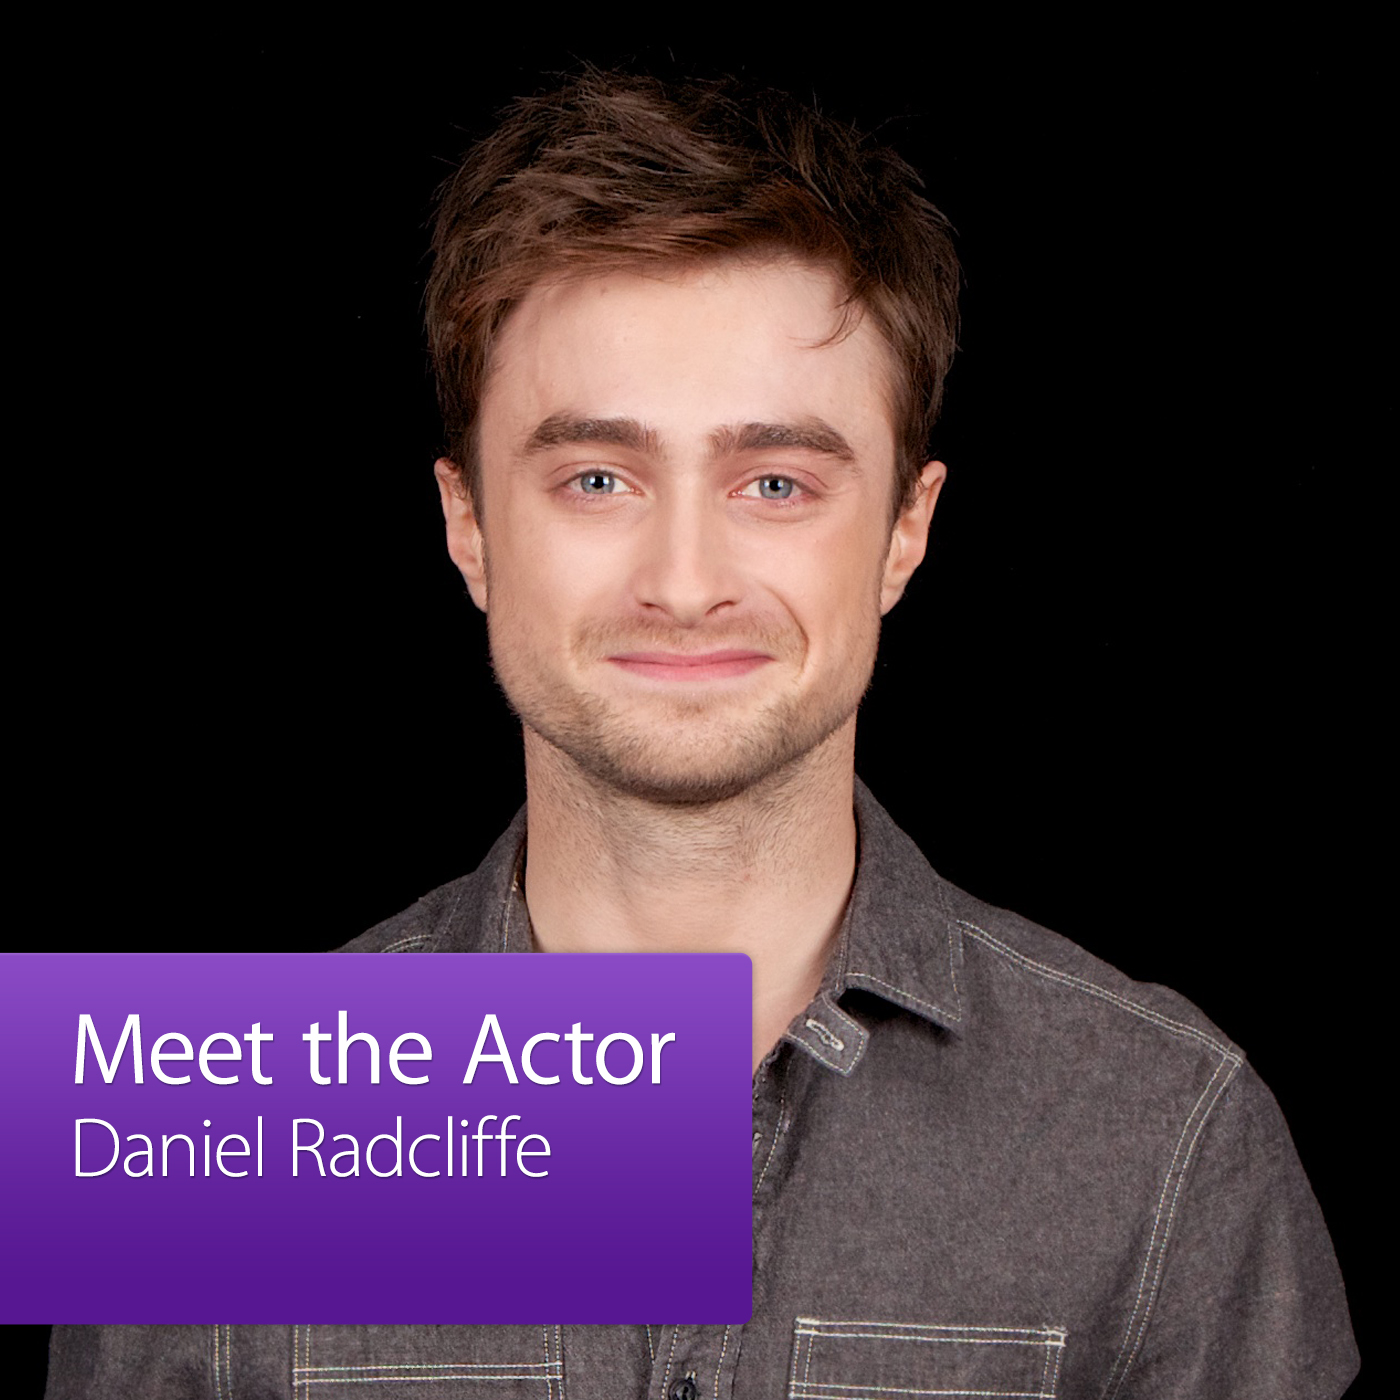 Daniel Radcliffe: Meet the Actor